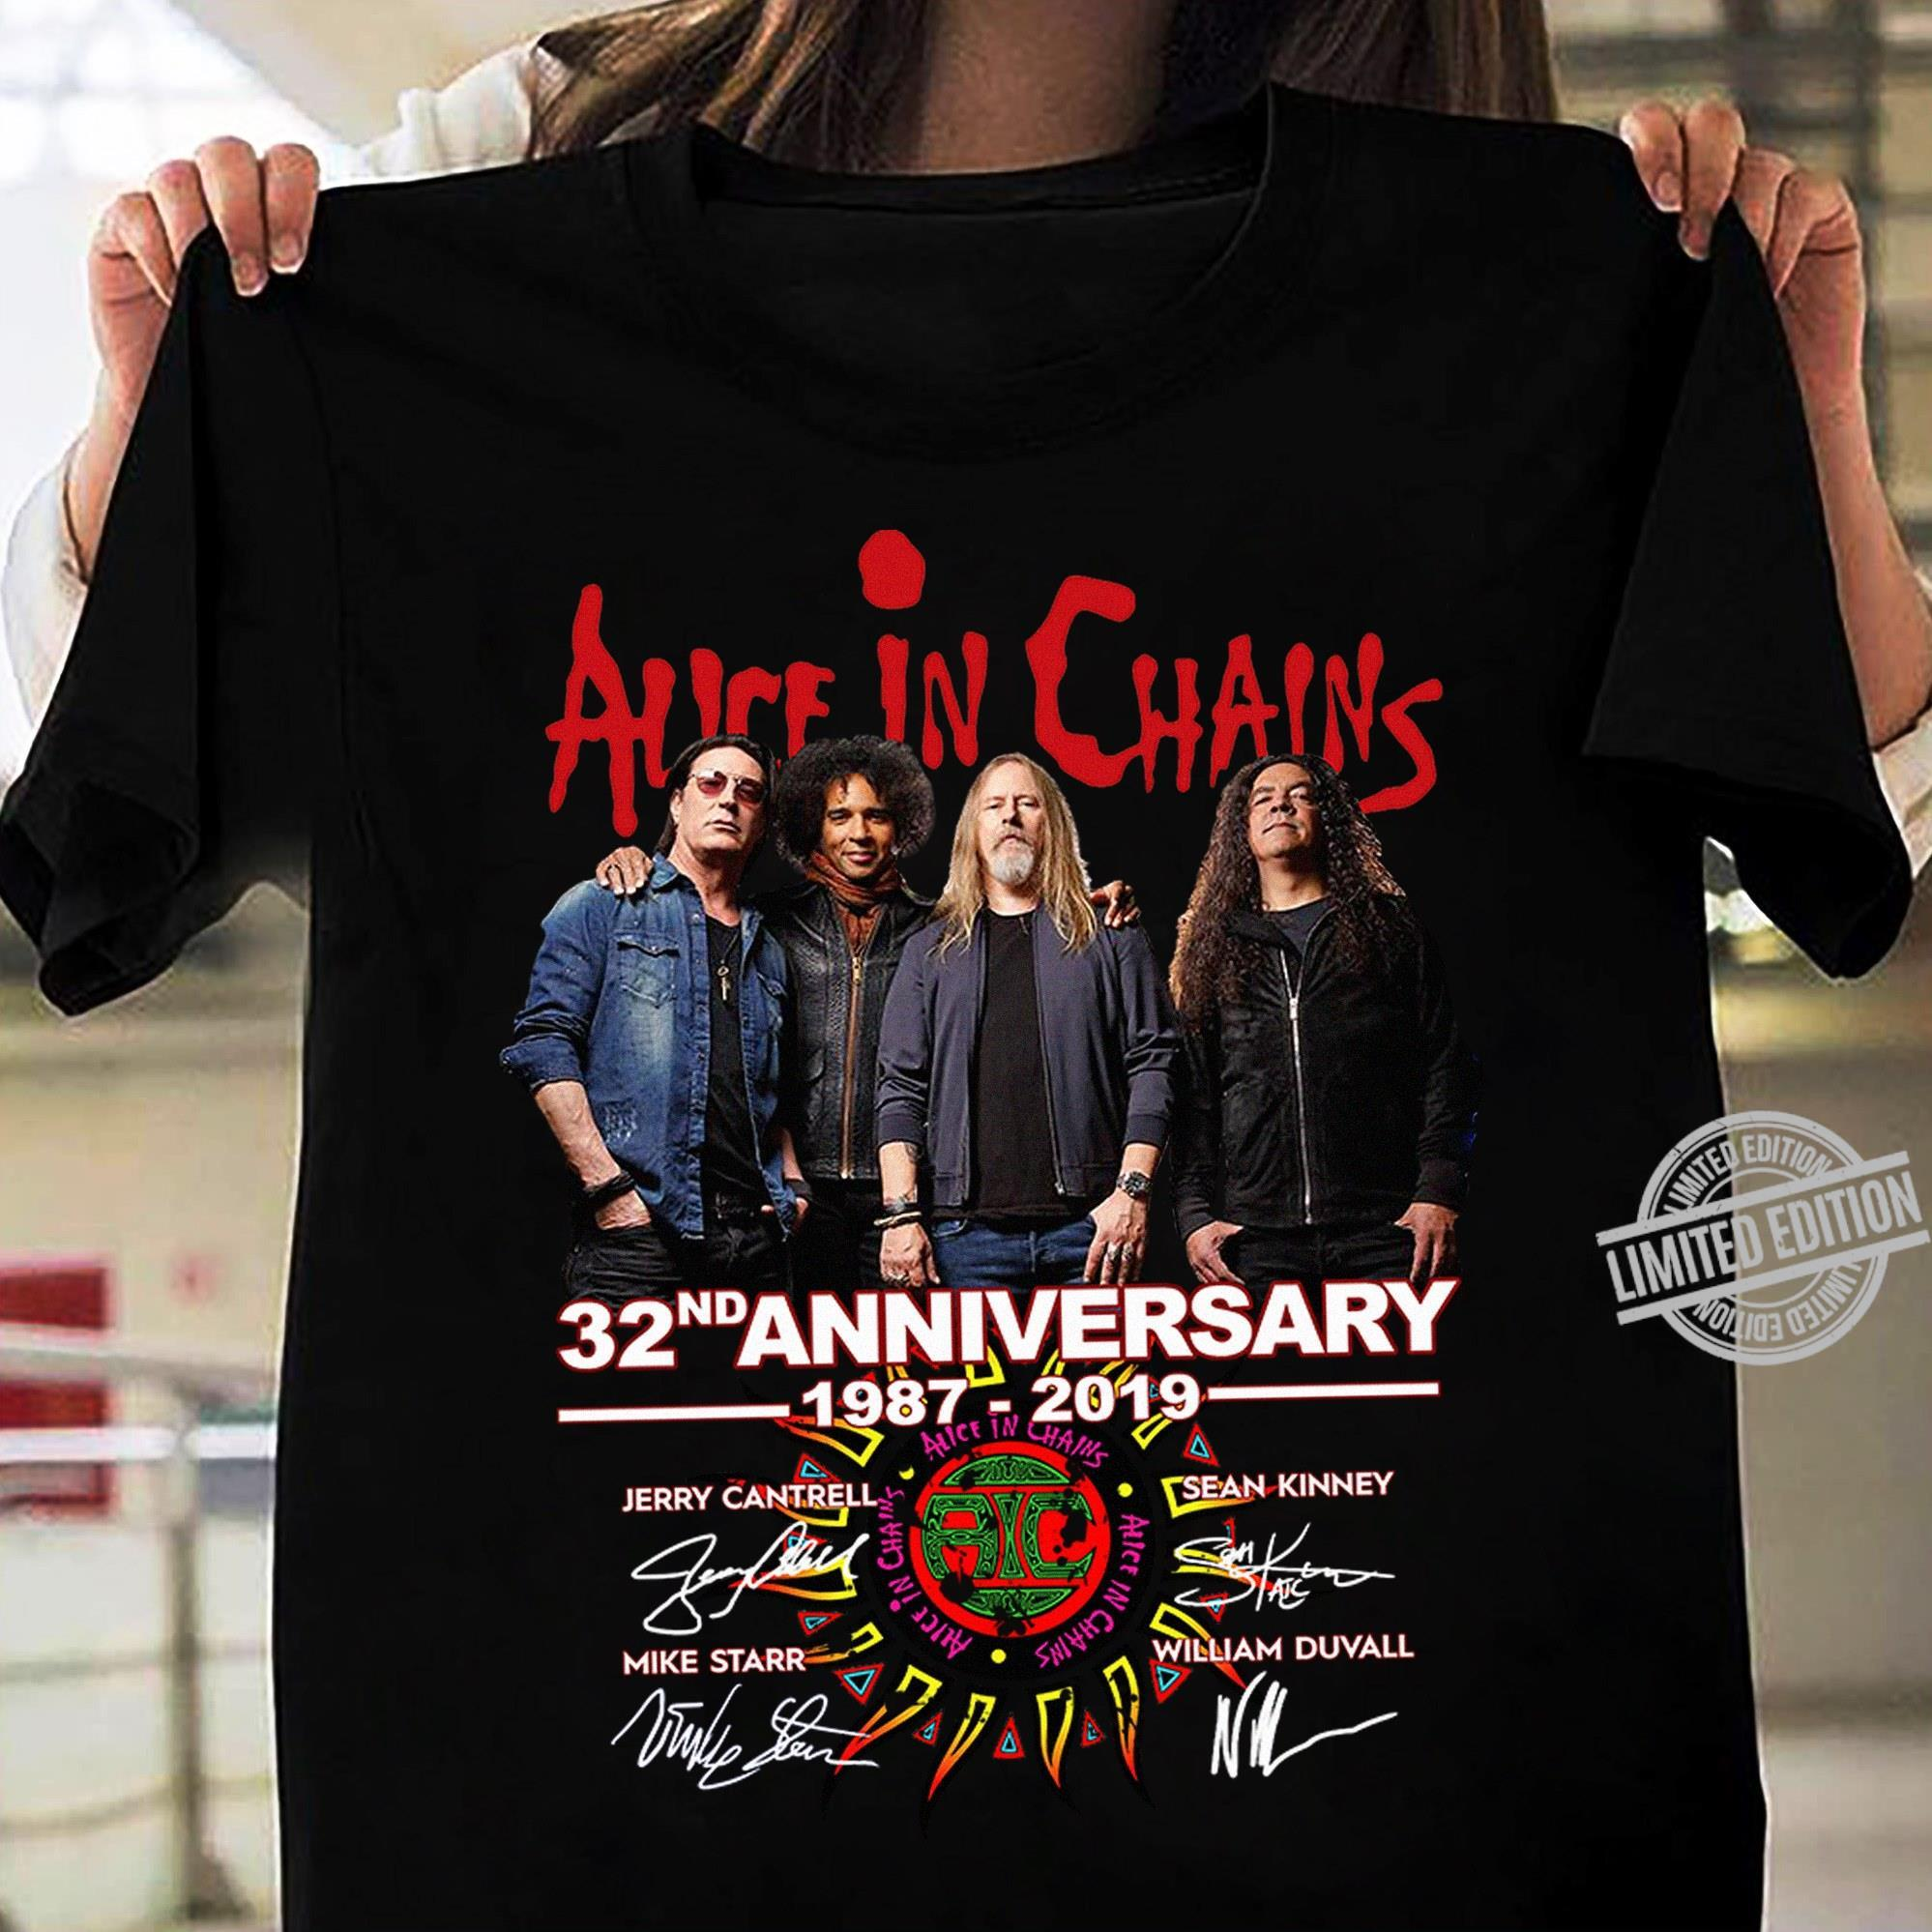 Alice In Chains 32nd Anniversary 1987-2019 Shirt